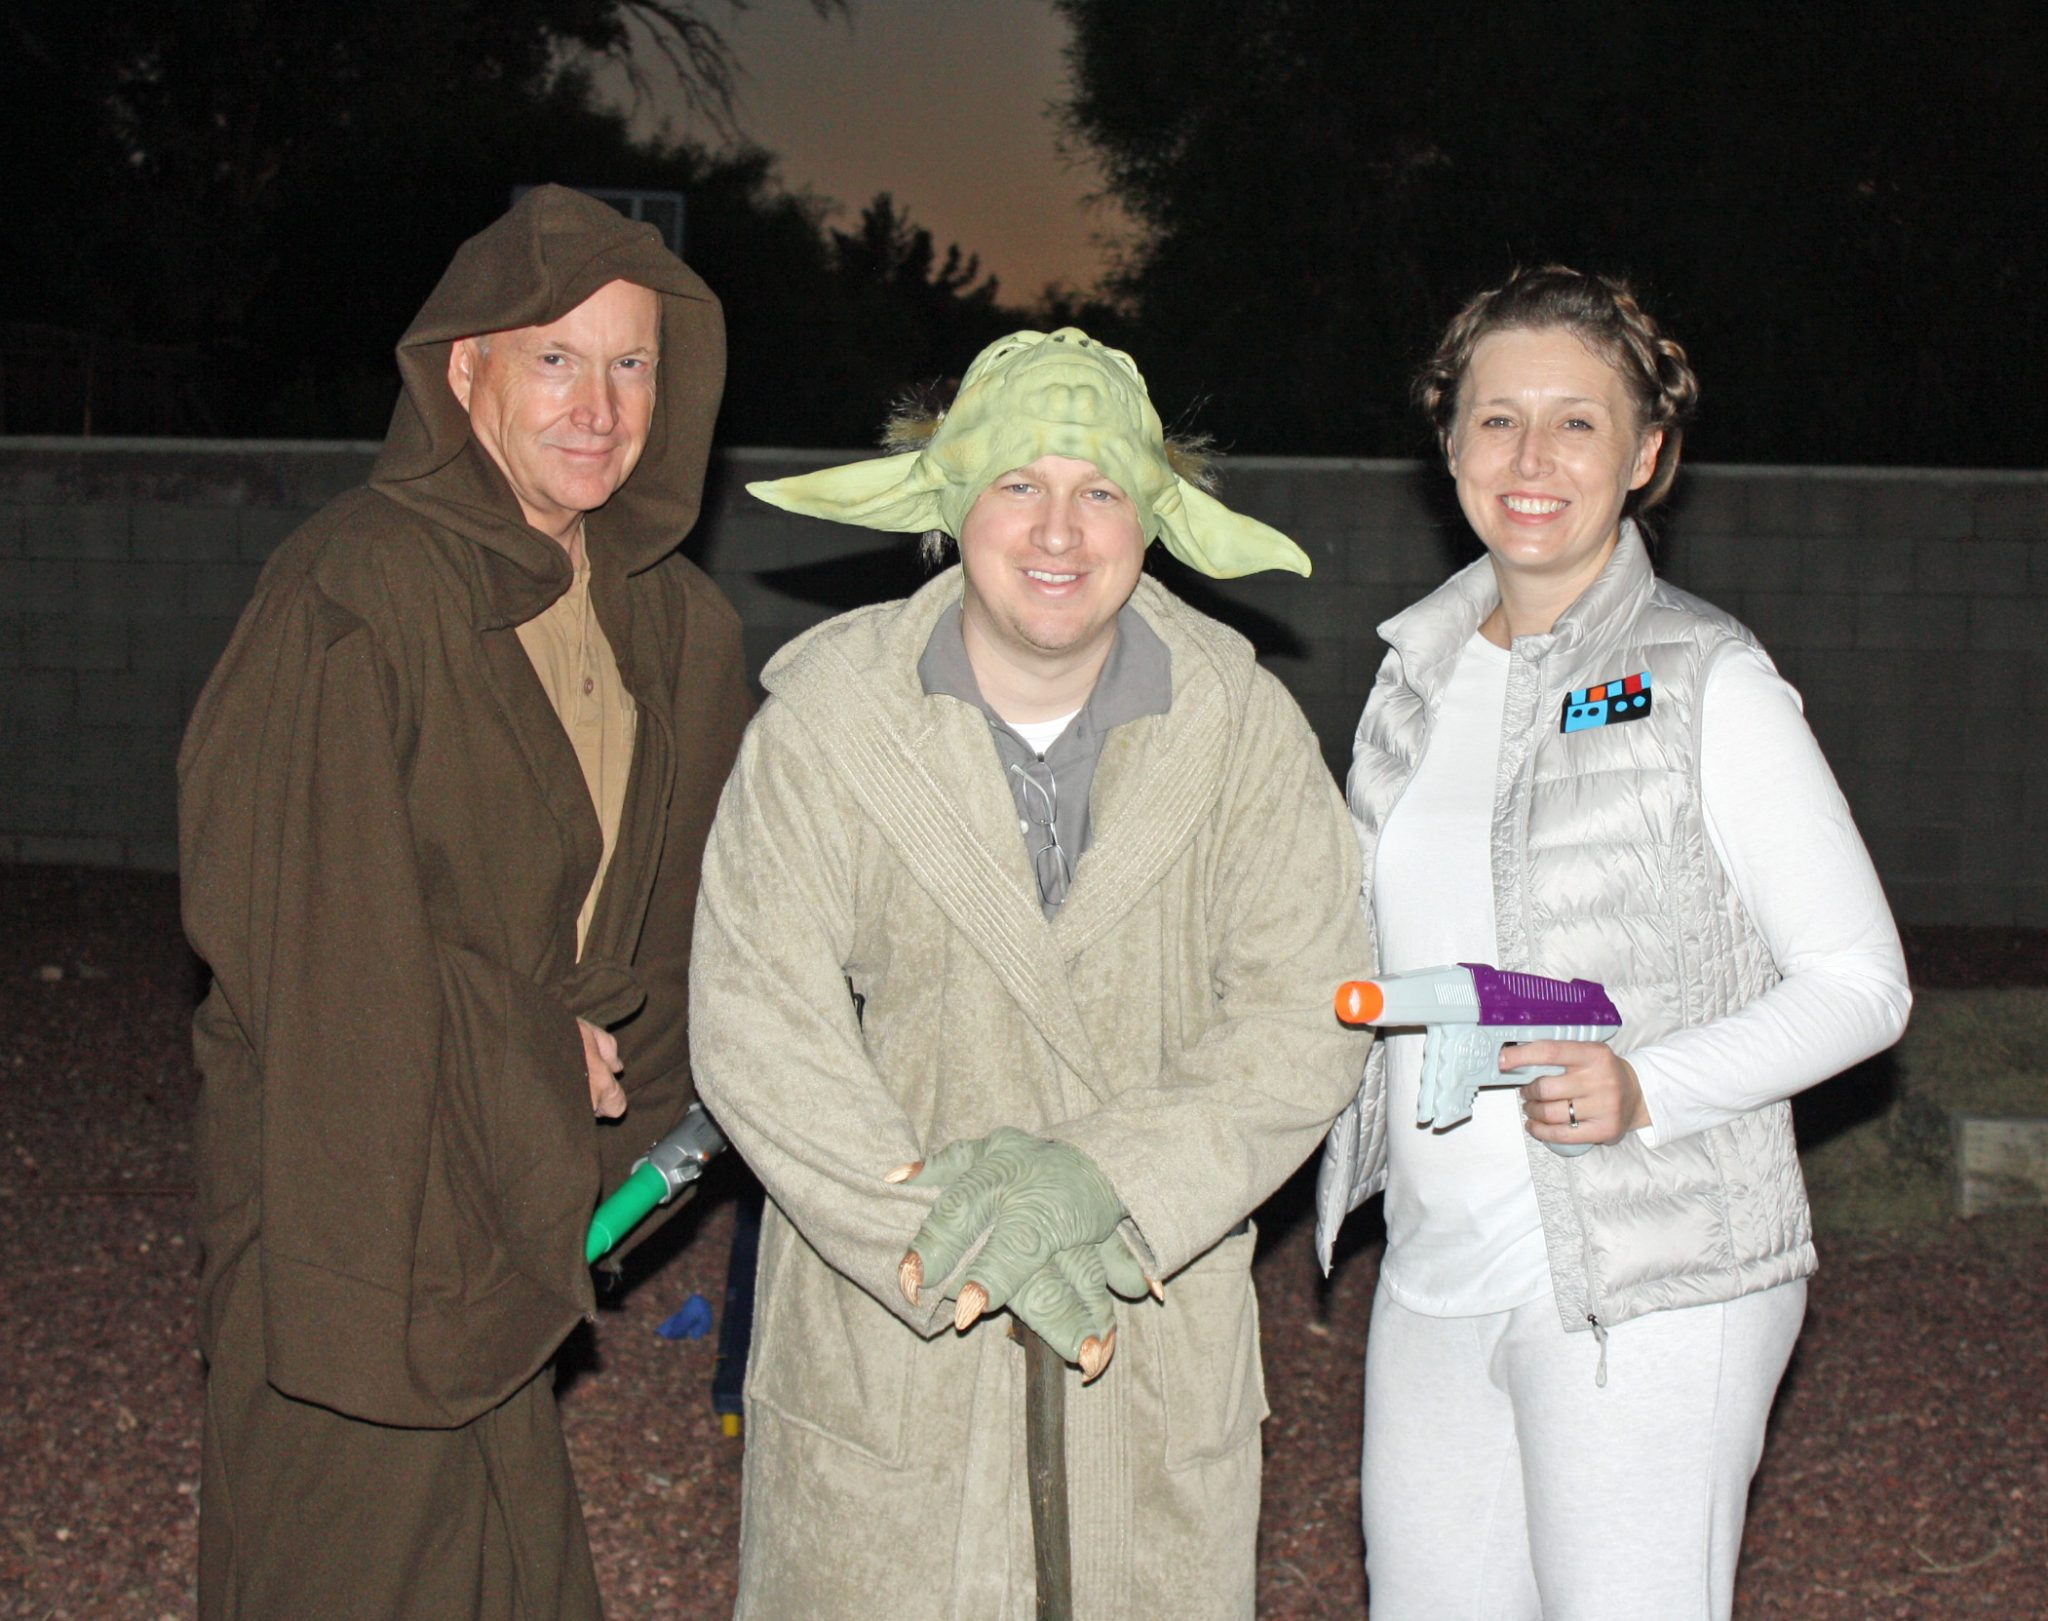 Jedi leia Yoda Star Wars Costumes  sc 1 st  Desert Chica & DIY Star Wars Costume Ideas | Desert Chica